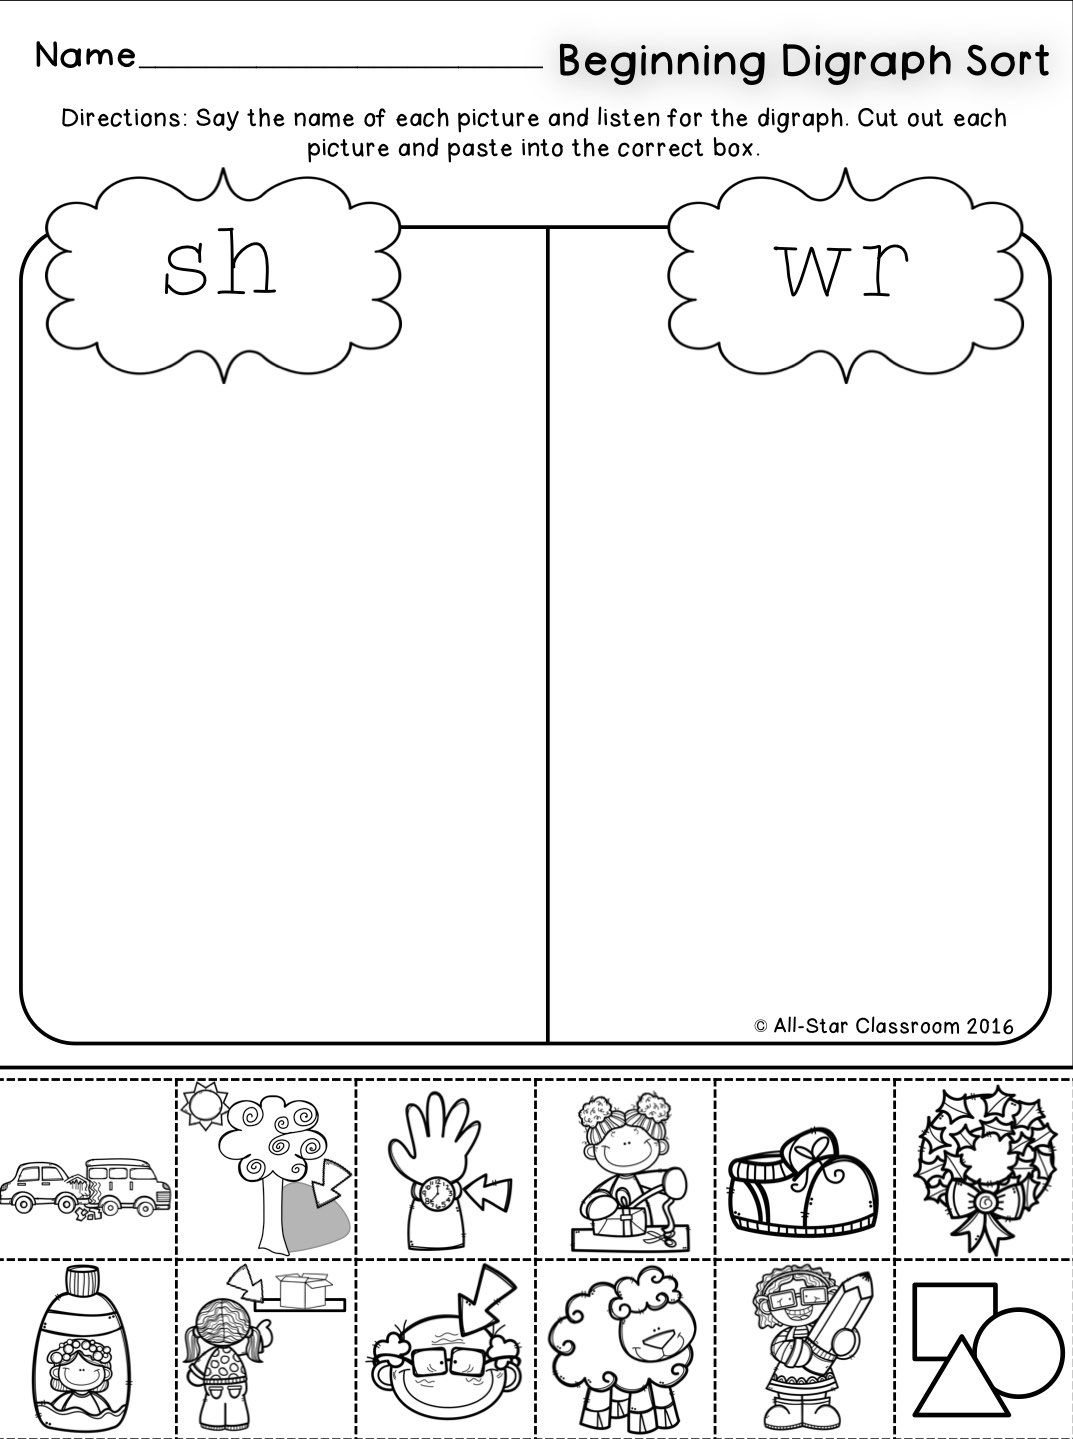 Beginning Digraphs Picture Sorts With Images